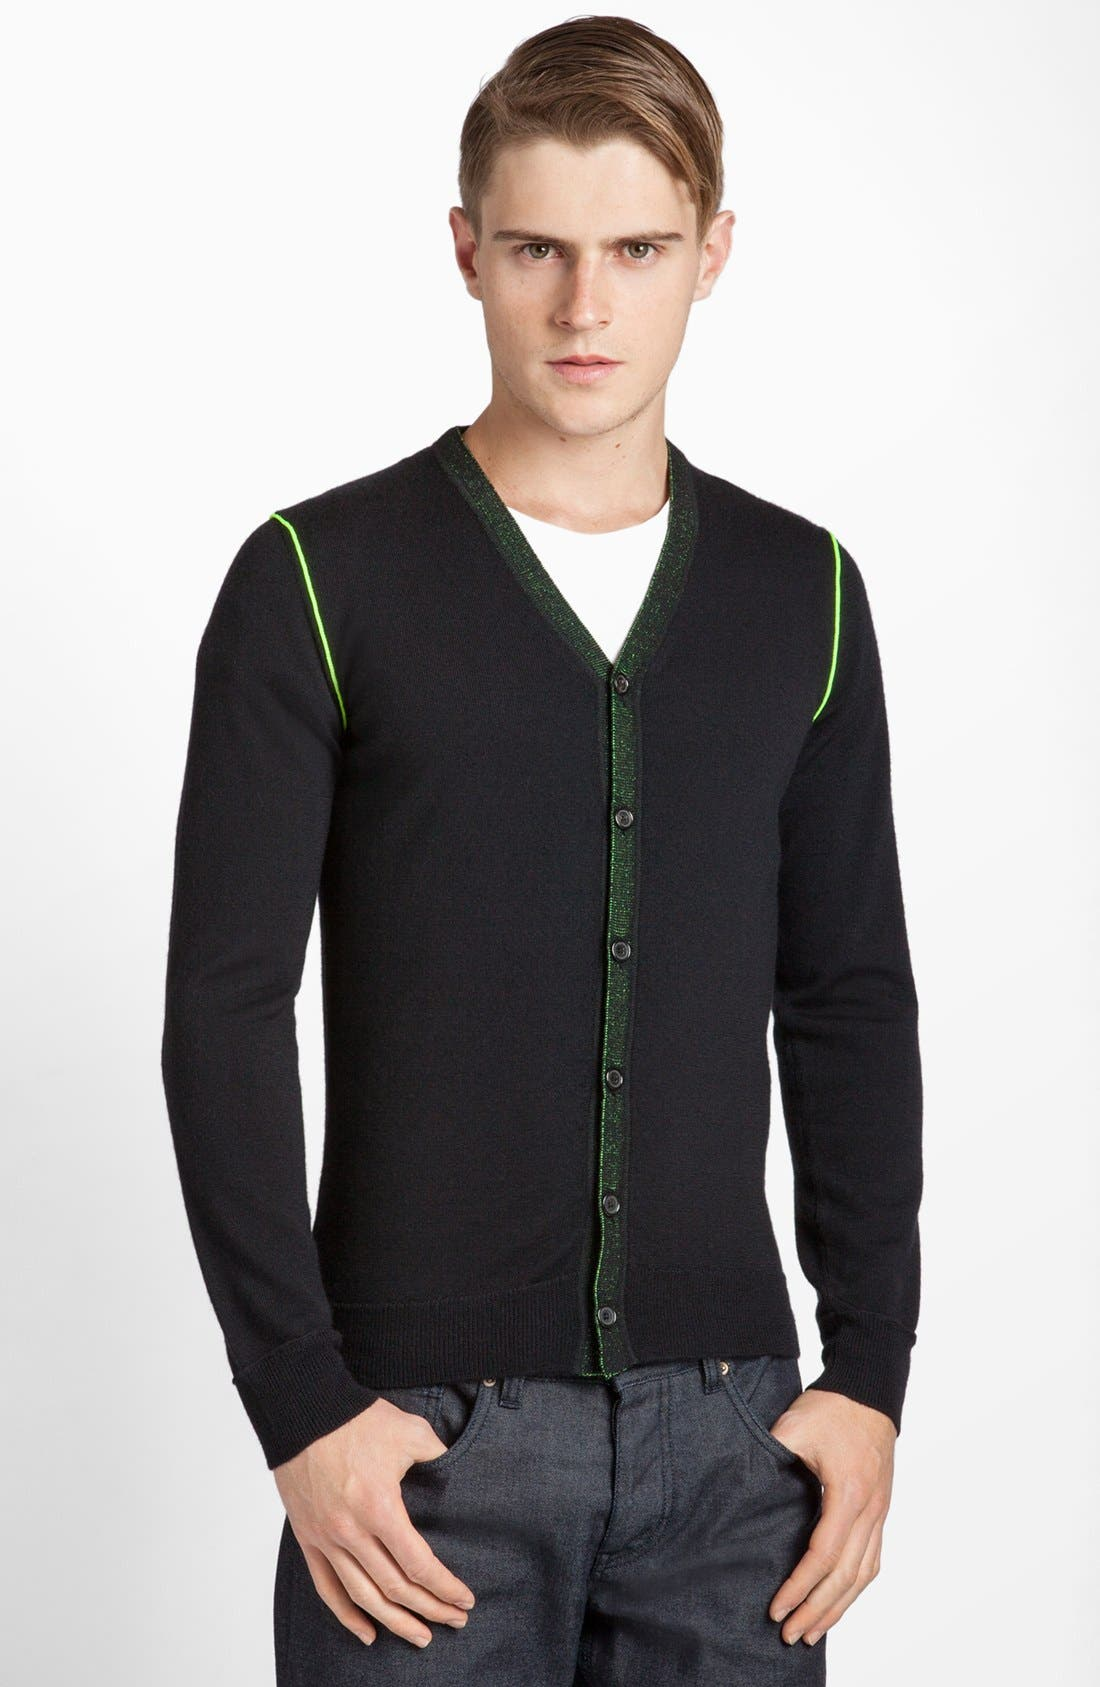 Alternate Image 1 Selected - Jil Sander Cashmere Cardigan with Neon Piping